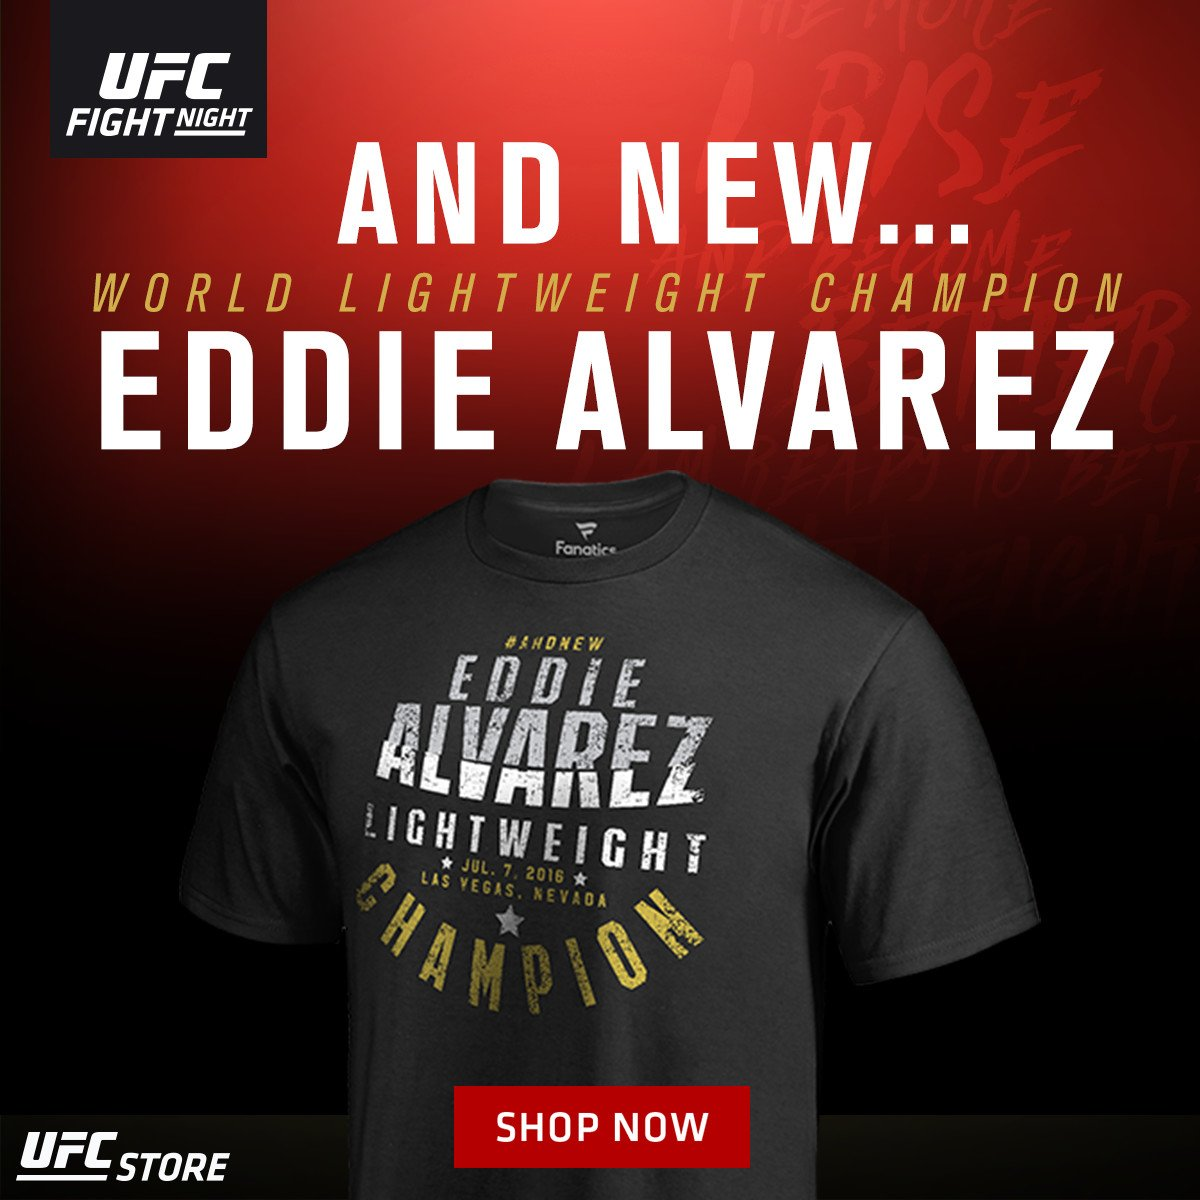 Shop UFC Clothing and MMA Gear from the Official UFC Store. UFC Store have the largest selection of UFC Apparel, including MMA Fight Shorts, T-Shirts, Hats and Sweatshirts. Offers apparel, DVDs, games, fight gloves, training equipment, accessories, and collectibles.